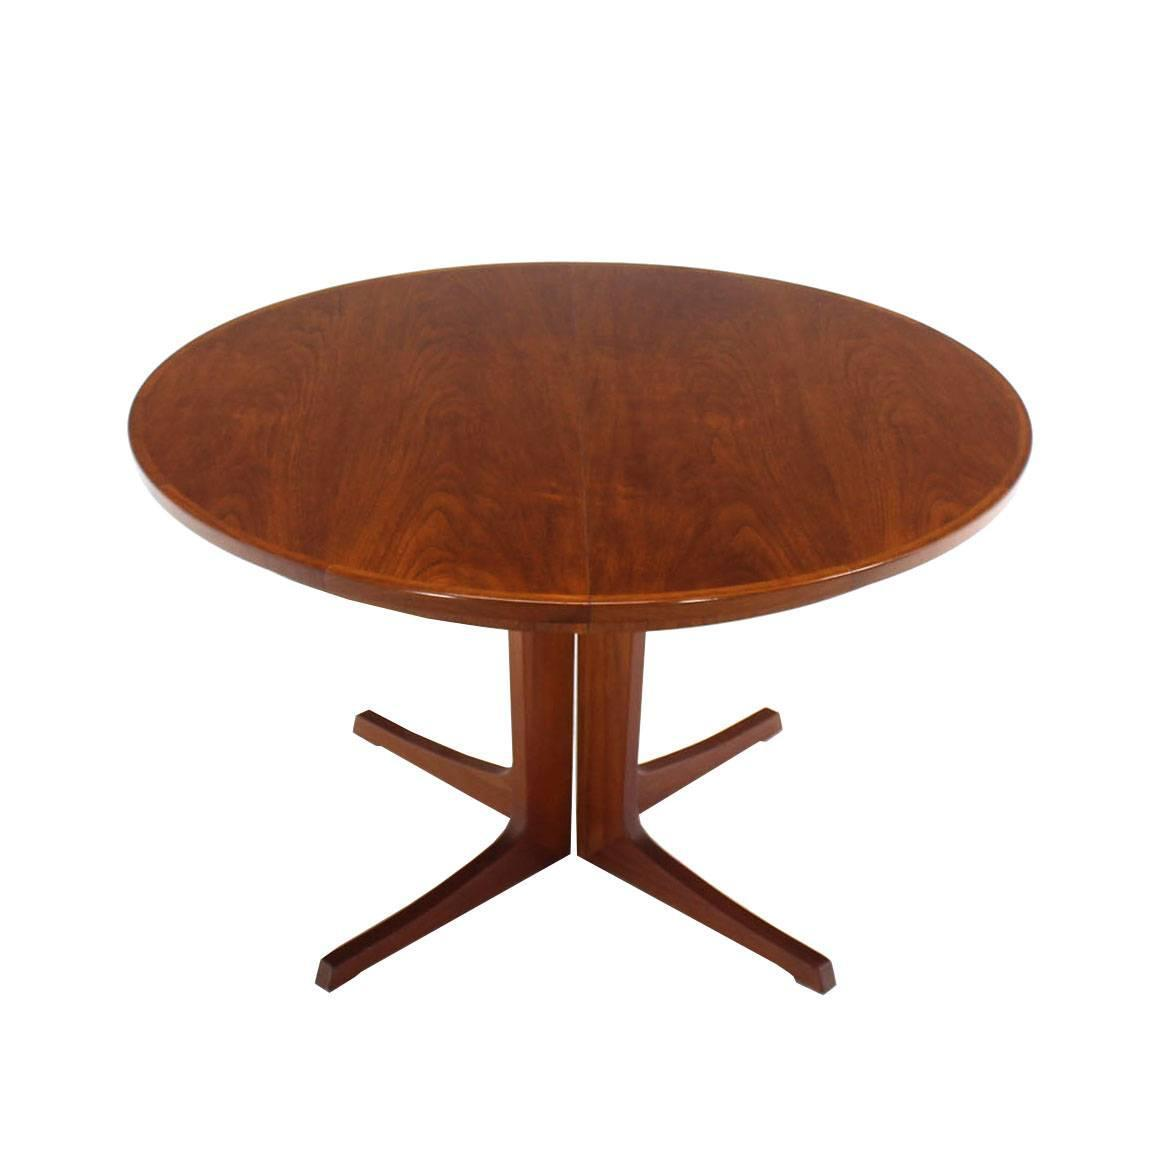 round danish mid century modern teak dining table with two leaves at